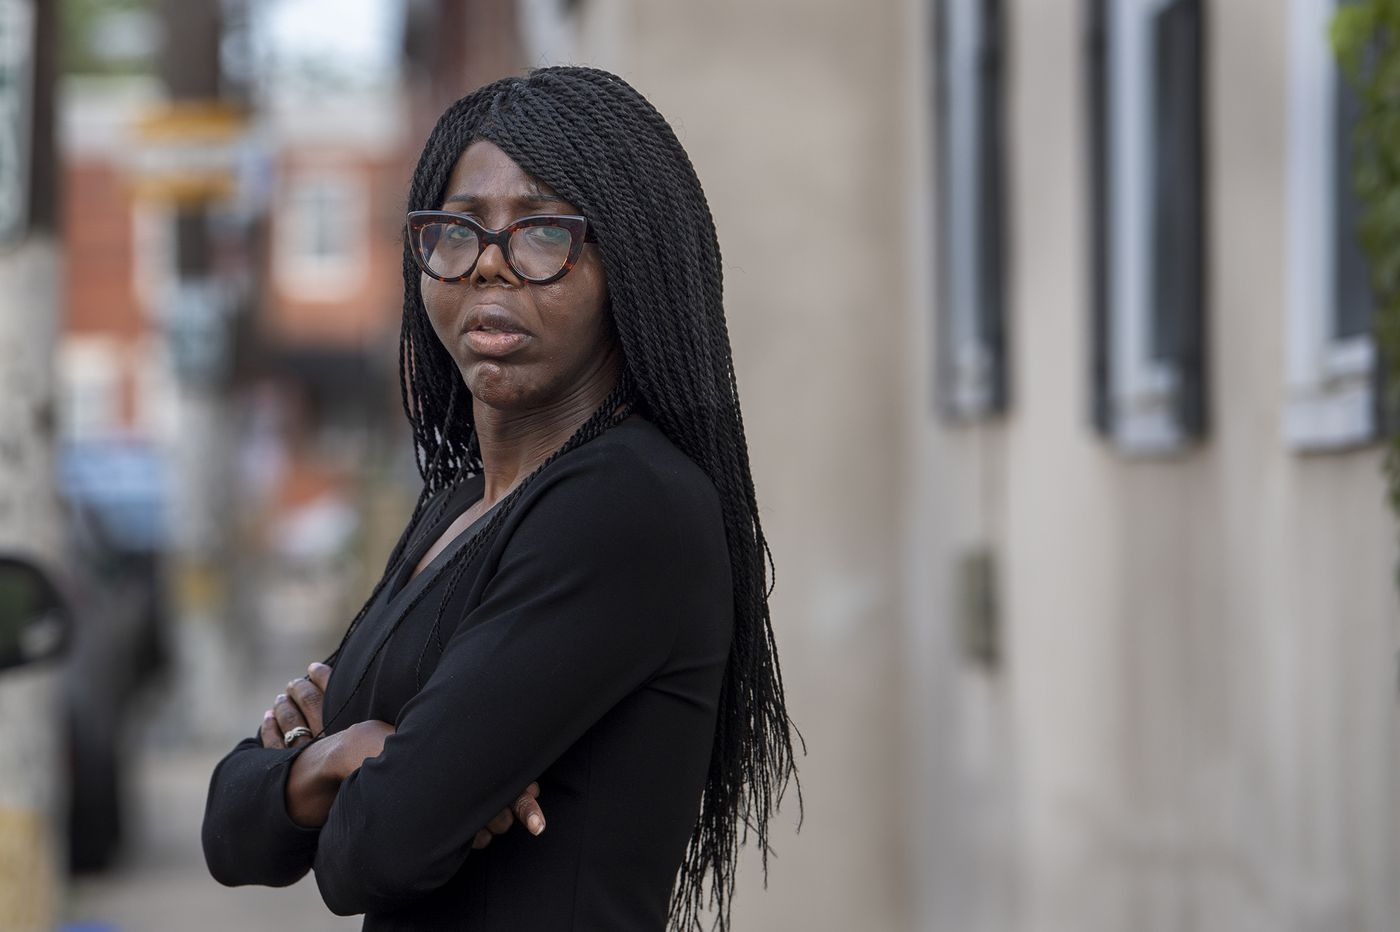 Transgender woman says she was beaten in her Point Breeze home and called slurs